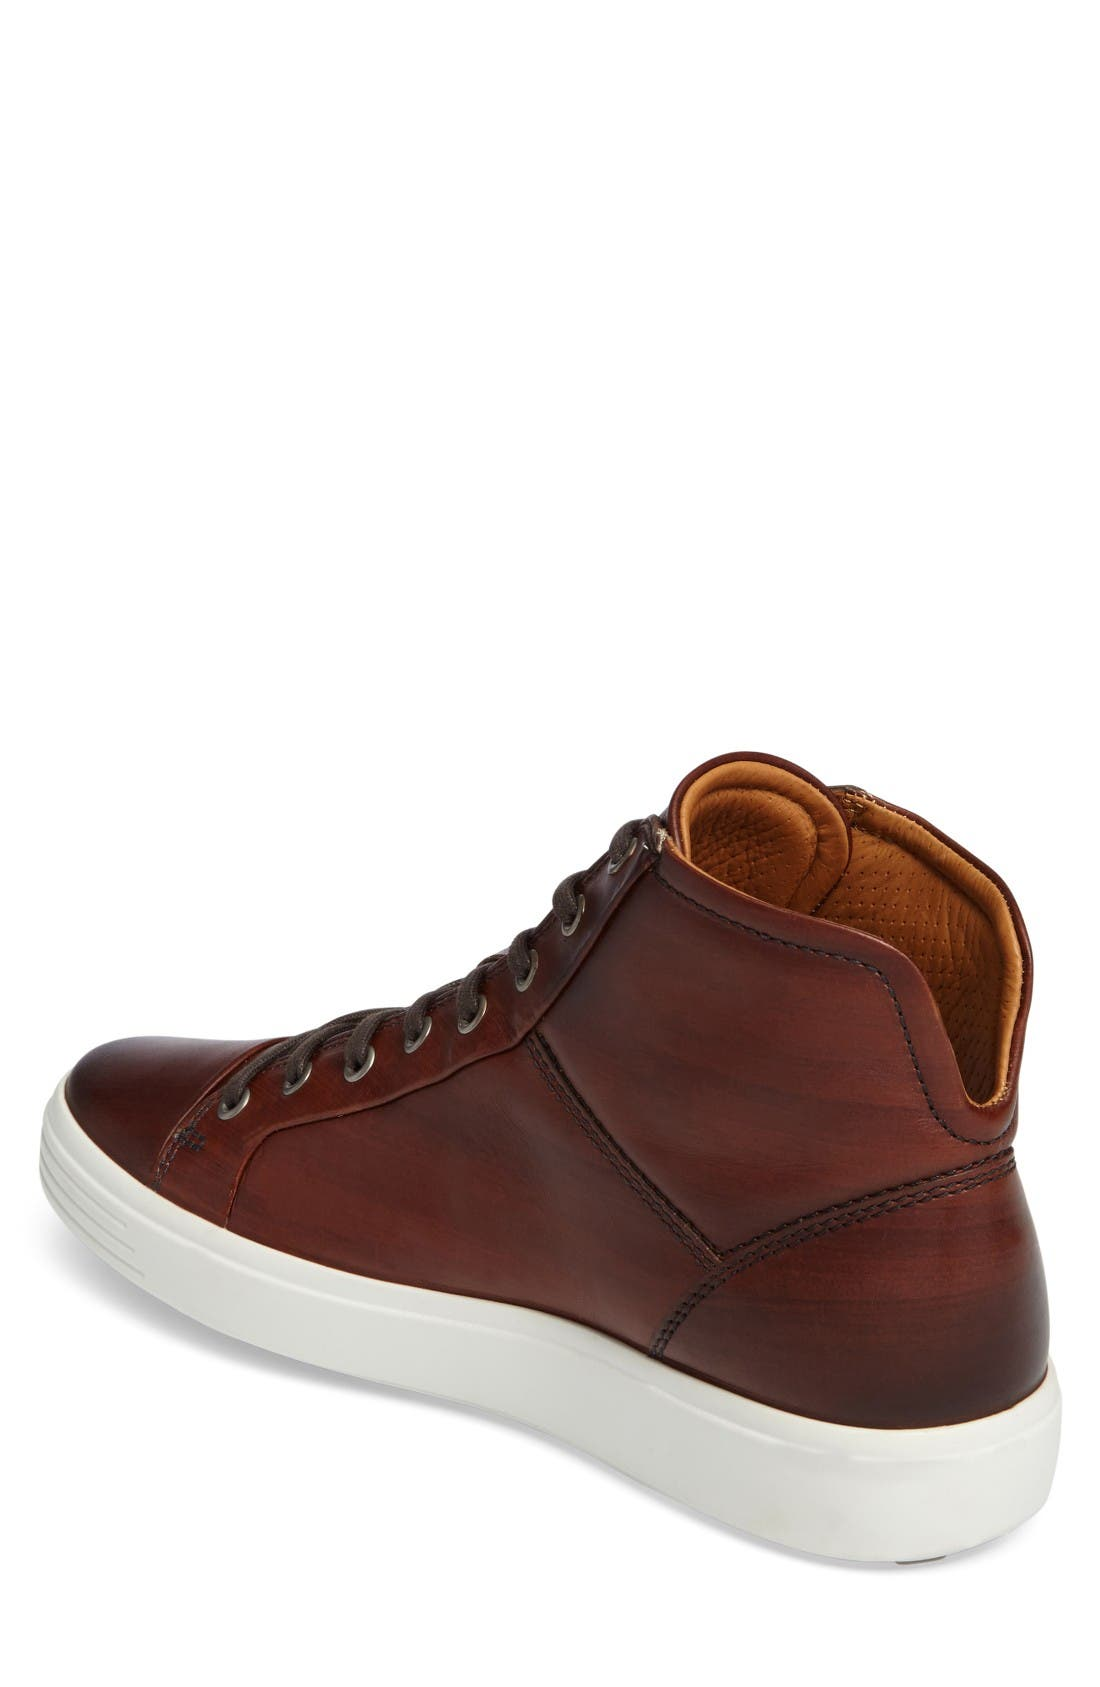 Soft 7 High Top Sneaker,                             Alternate thumbnail 2, color,                             Whisky Leather